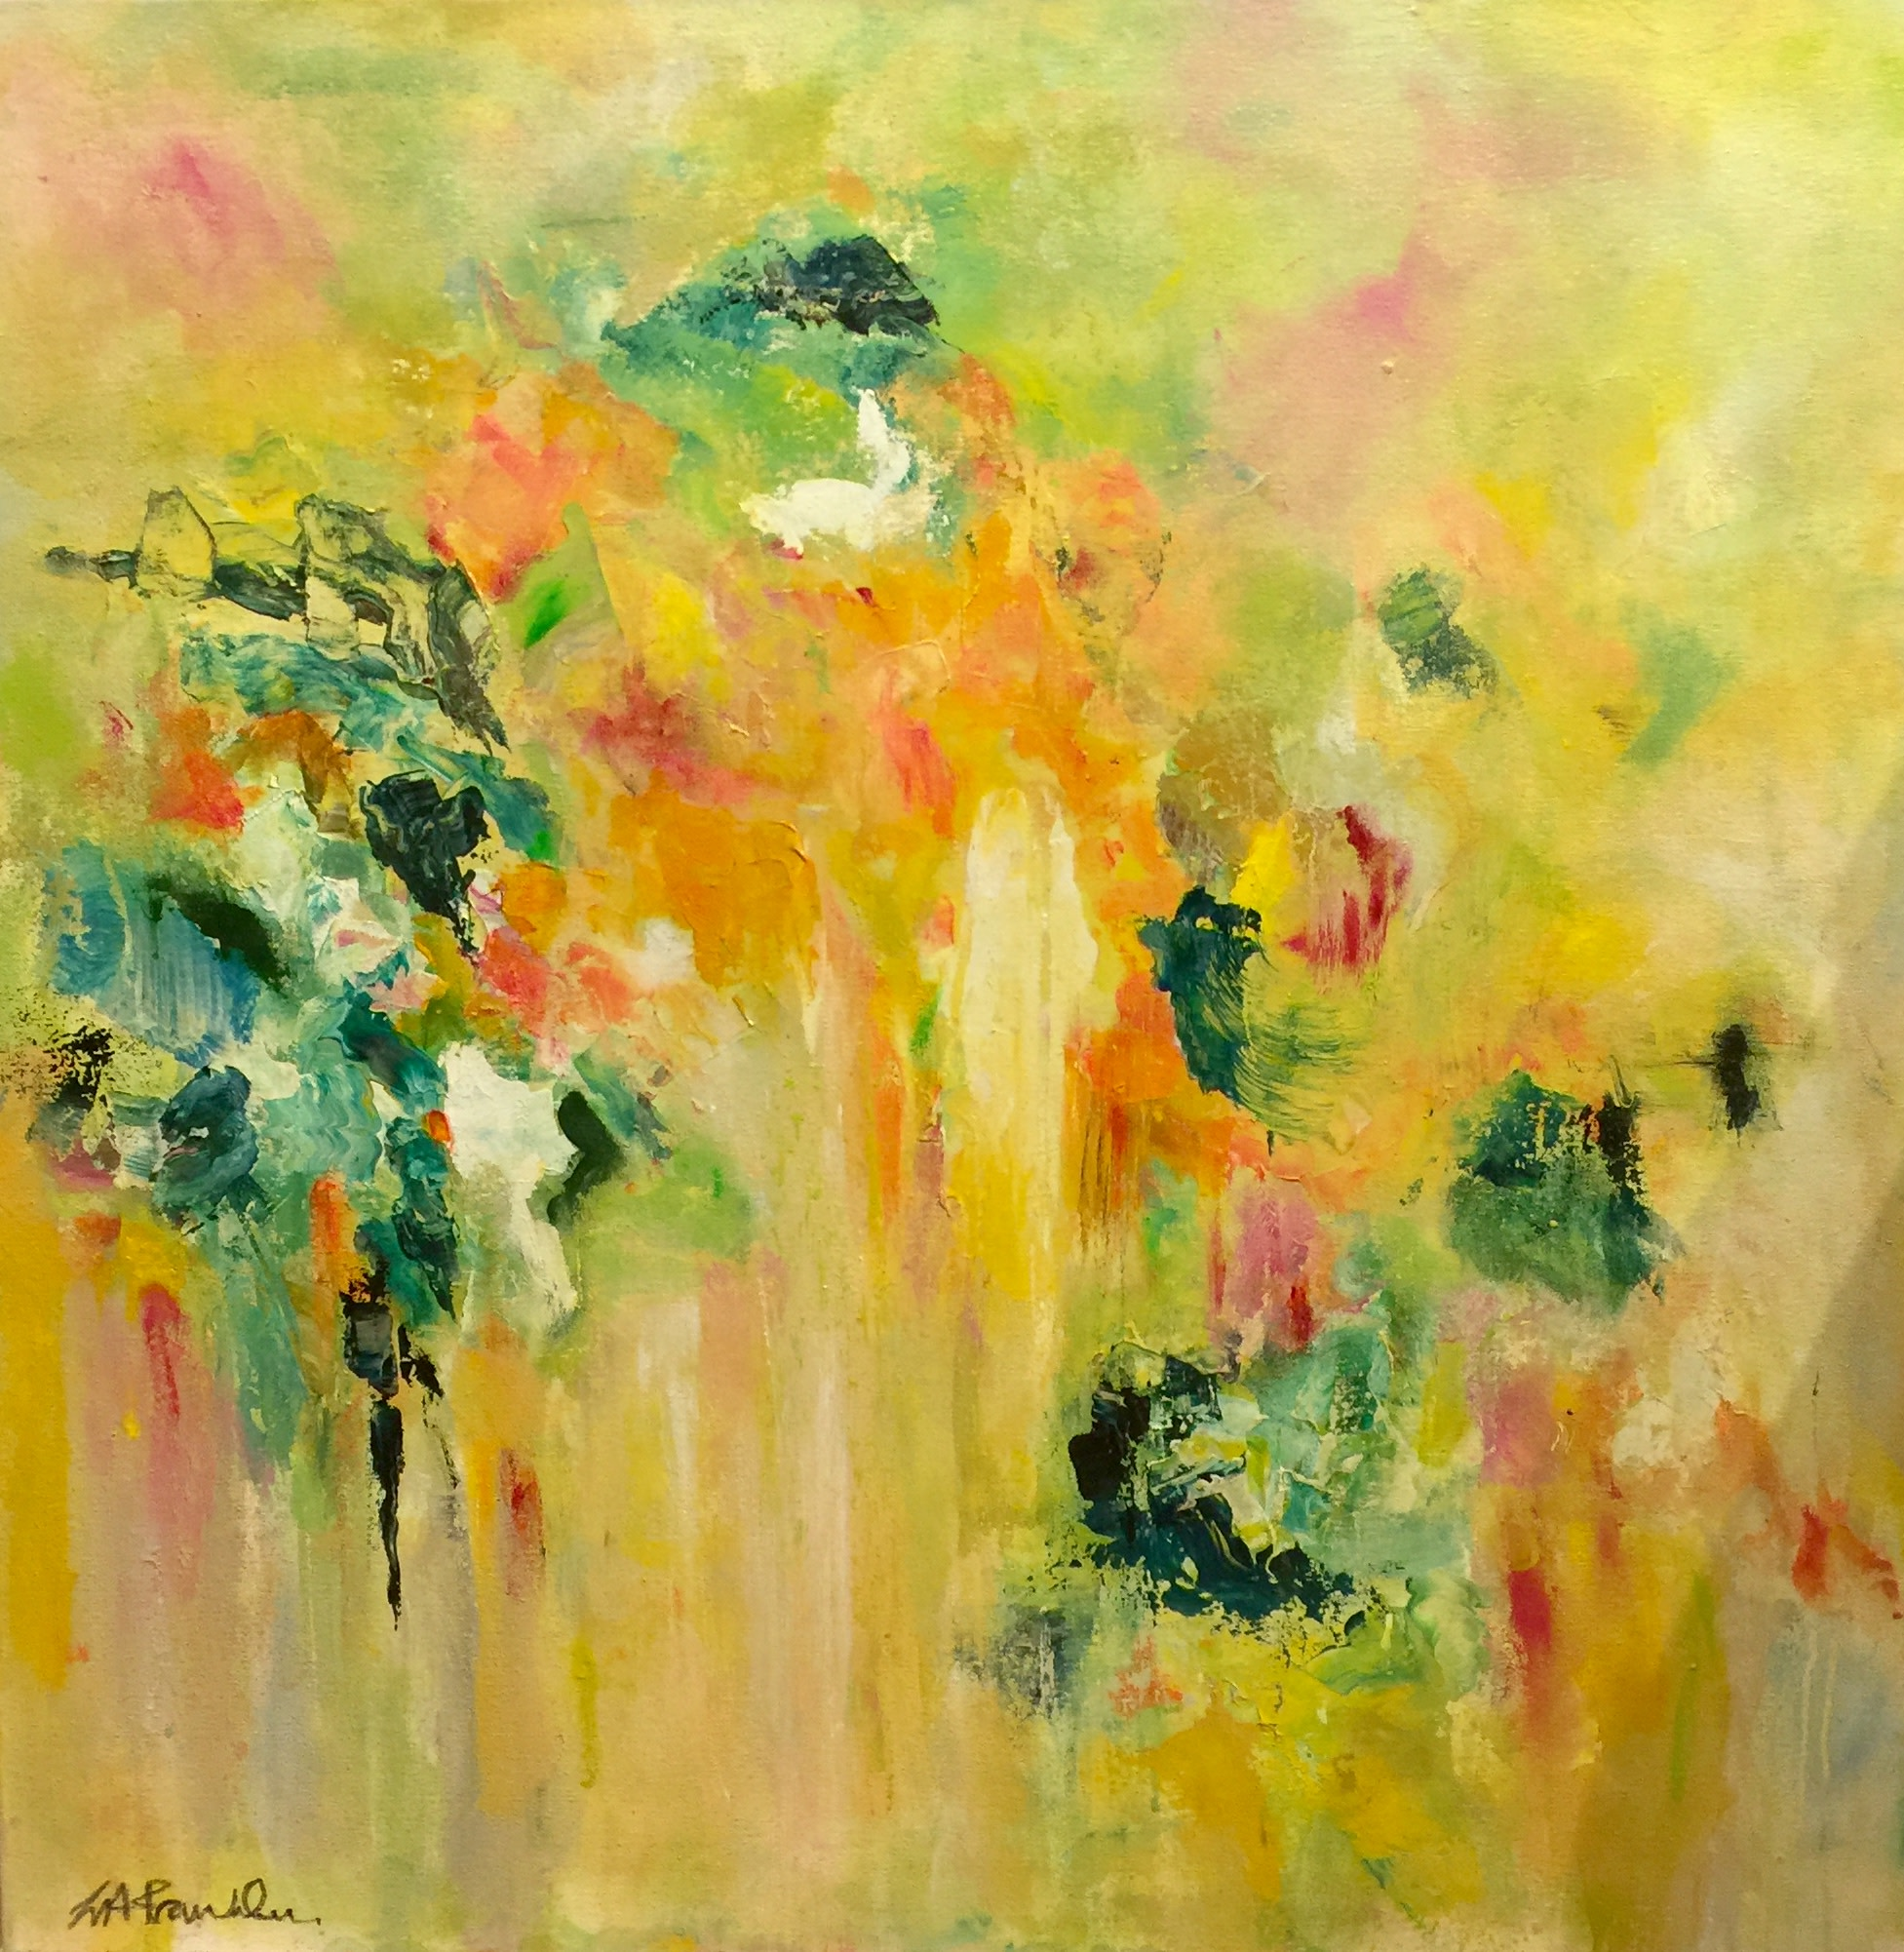 <span class=&#34;link fancybox-details-link&#34;><a href=&#34;/artists/38-linda-franklin/works/2134-linda-franklin-forever-summer/&#34;>View Detail Page</a></span><div class=&#34;artist&#34;><strong>Linda Franklin</strong></div> <div class=&#34;title&#34;><em>Forever Summer </em></div> <div class=&#34;medium&#34;>Mixed Media on Canvas</div> <div class=&#34;dimensions&#34;>90 x 90 cm</div><div class=&#34;price&#34;>£1,950.00</div><div class=&#34;copyright_line&#34;>Copyright The Artist</div>